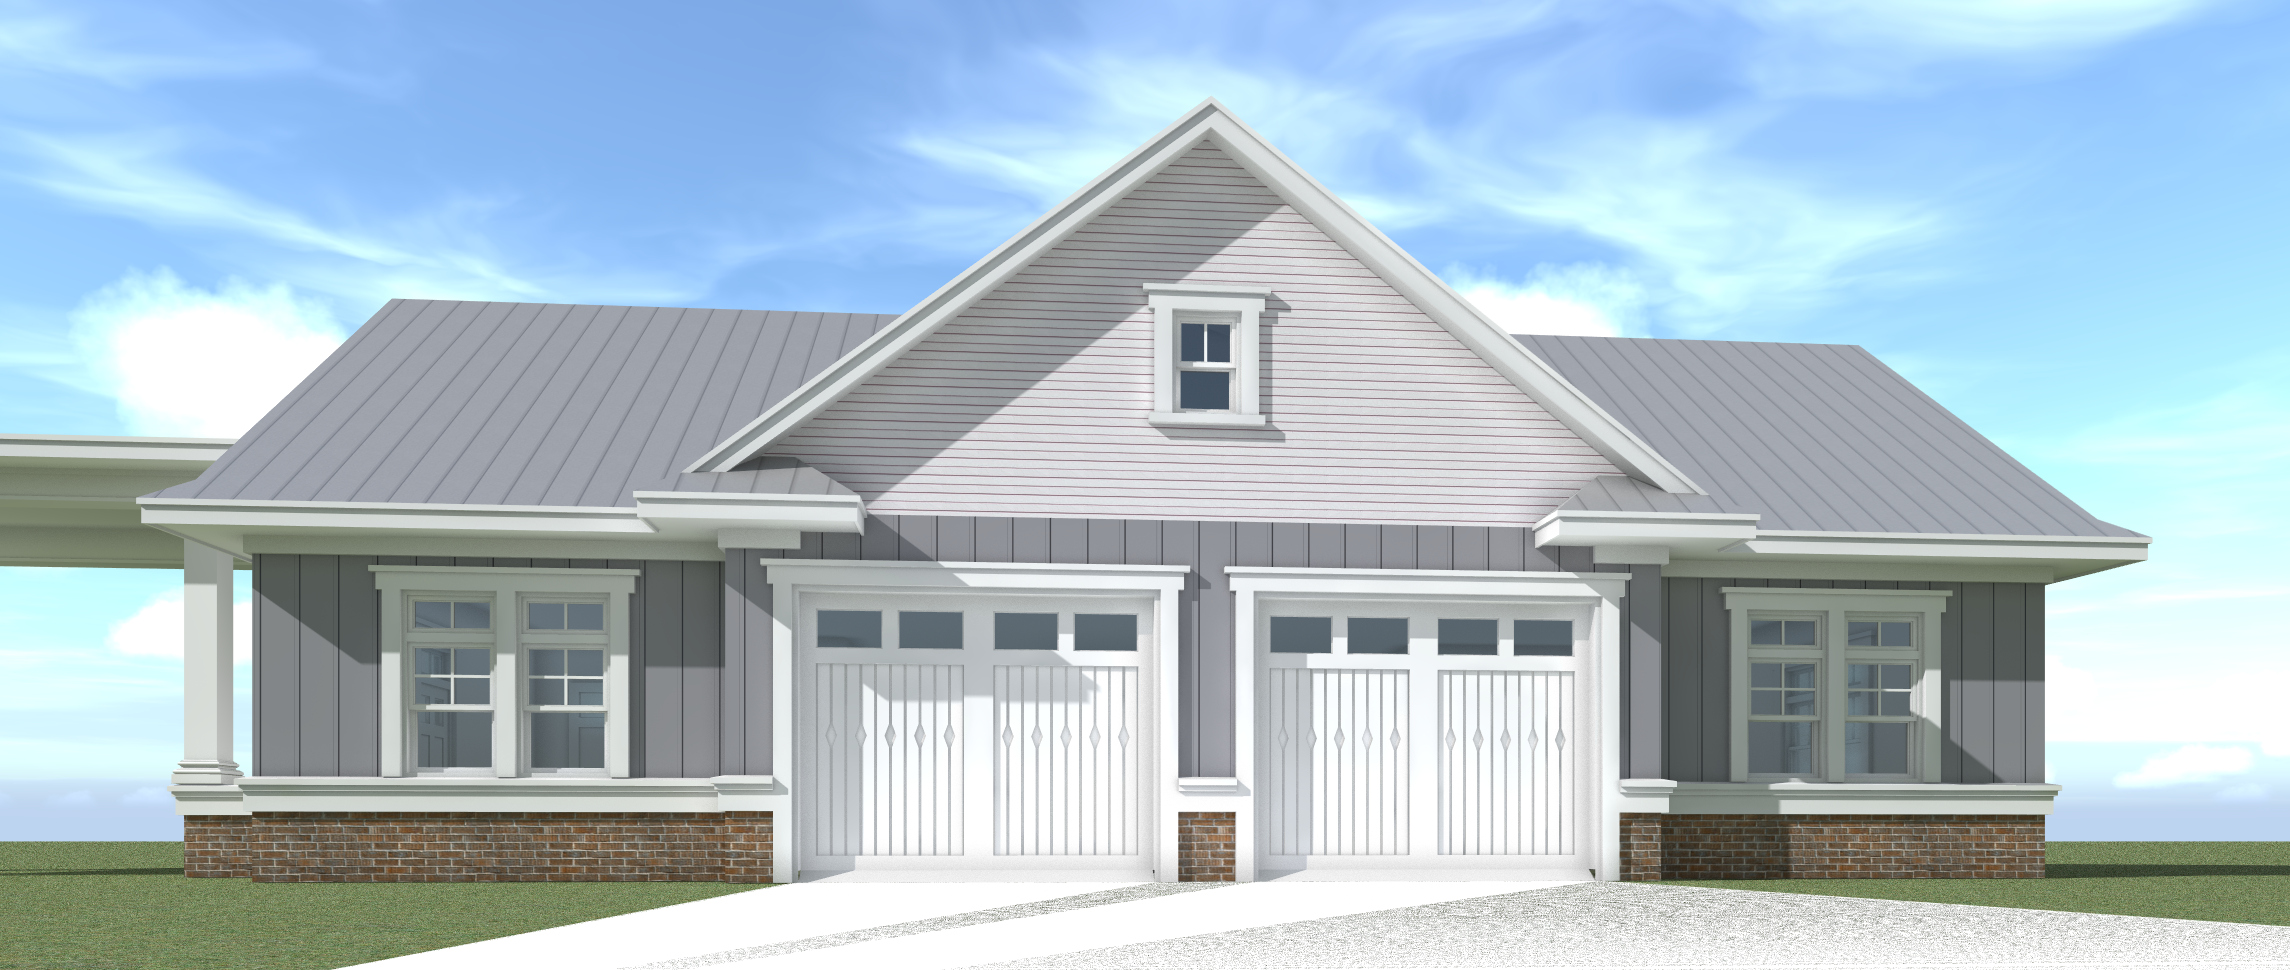 Farm Garage 01 Plan By Tyree House Plans